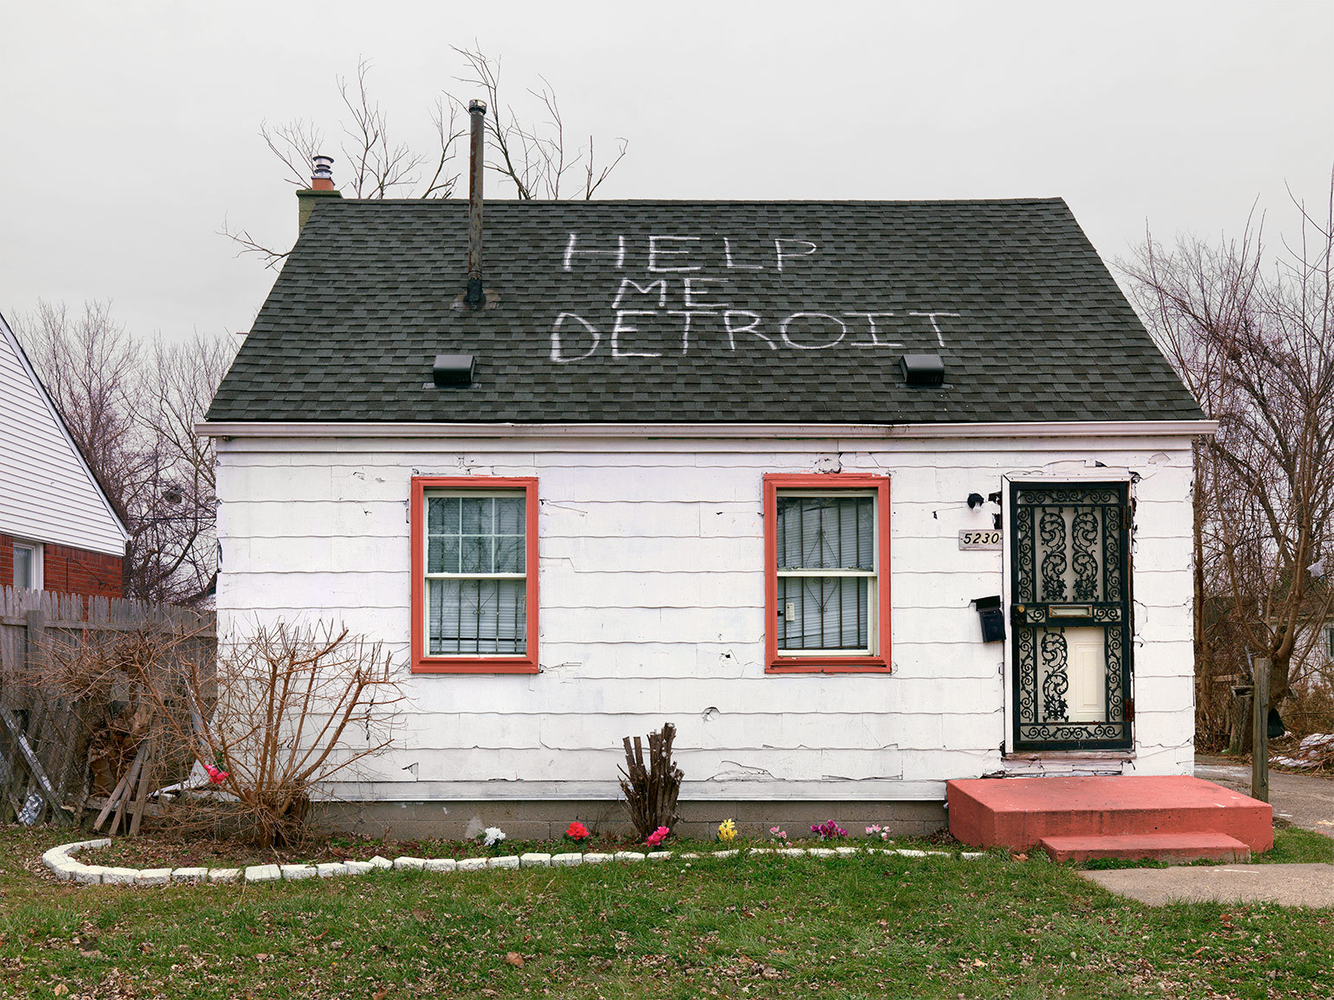 House, Eastside, Detroit 2014